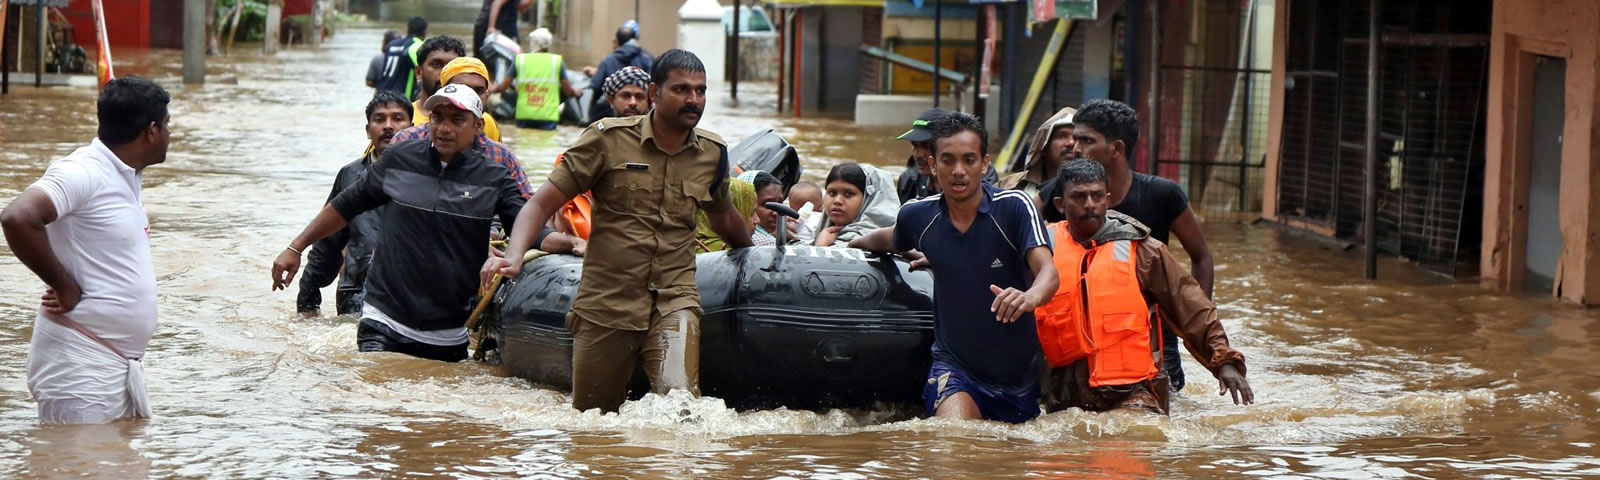 Flood Affected People in Ekal Villages in Kerala